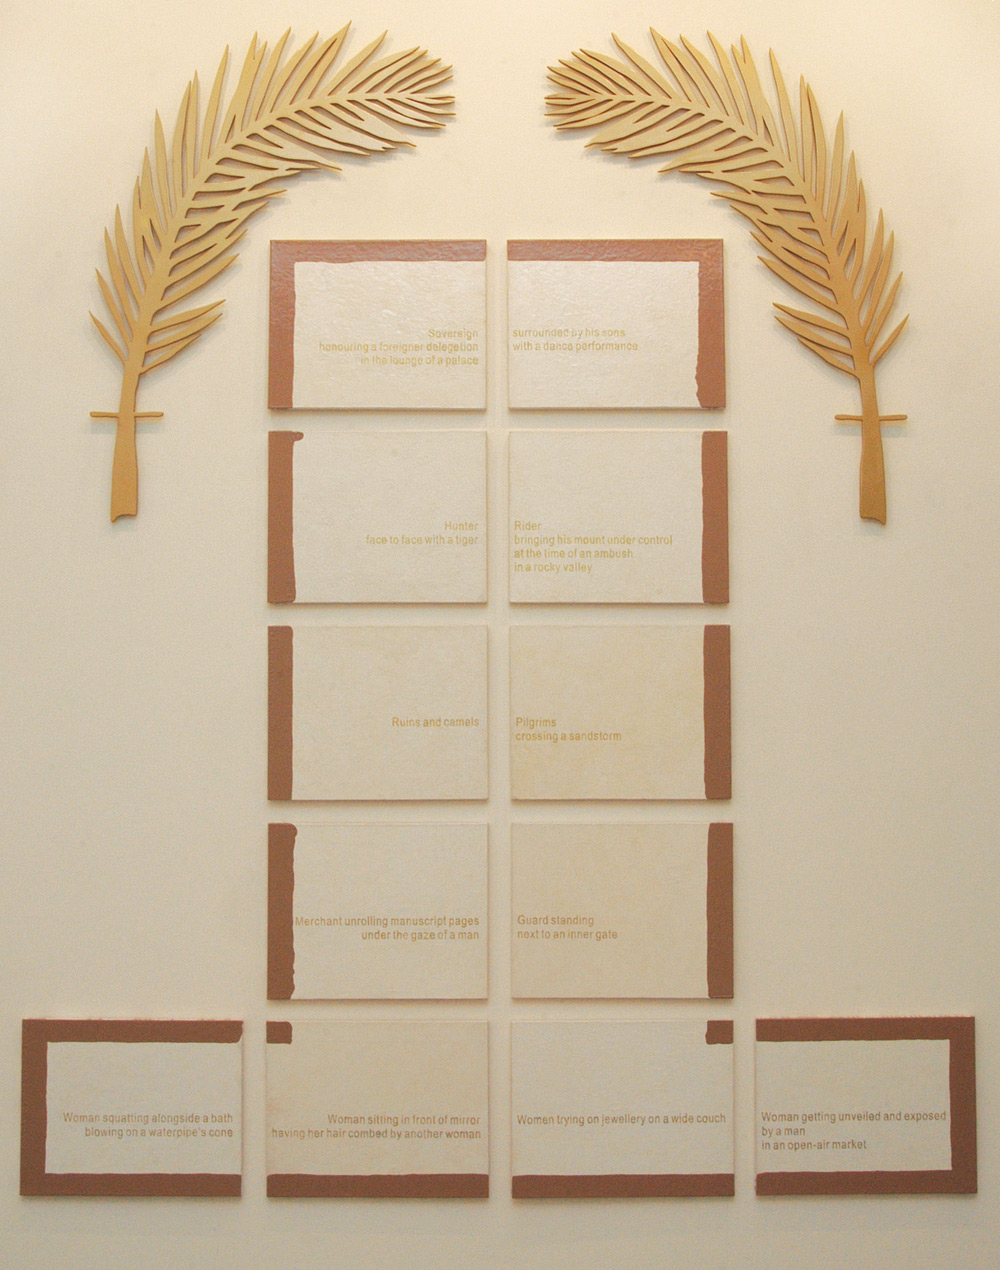 The Motif Celebration (A Dreamed Collection)  2005, Mix medias, Twelve canvas topped with two golden PVC palm leaves, appr. 202.6 x 243 cm (installation), 48.4 x 38.2 cm (canvas)